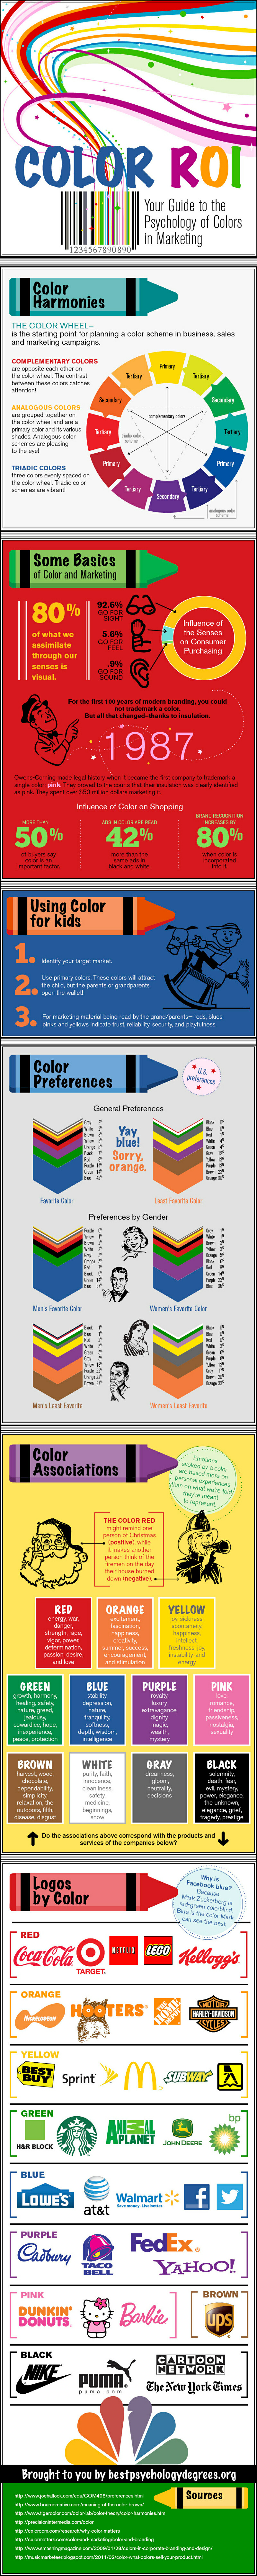 how colors influence consumers